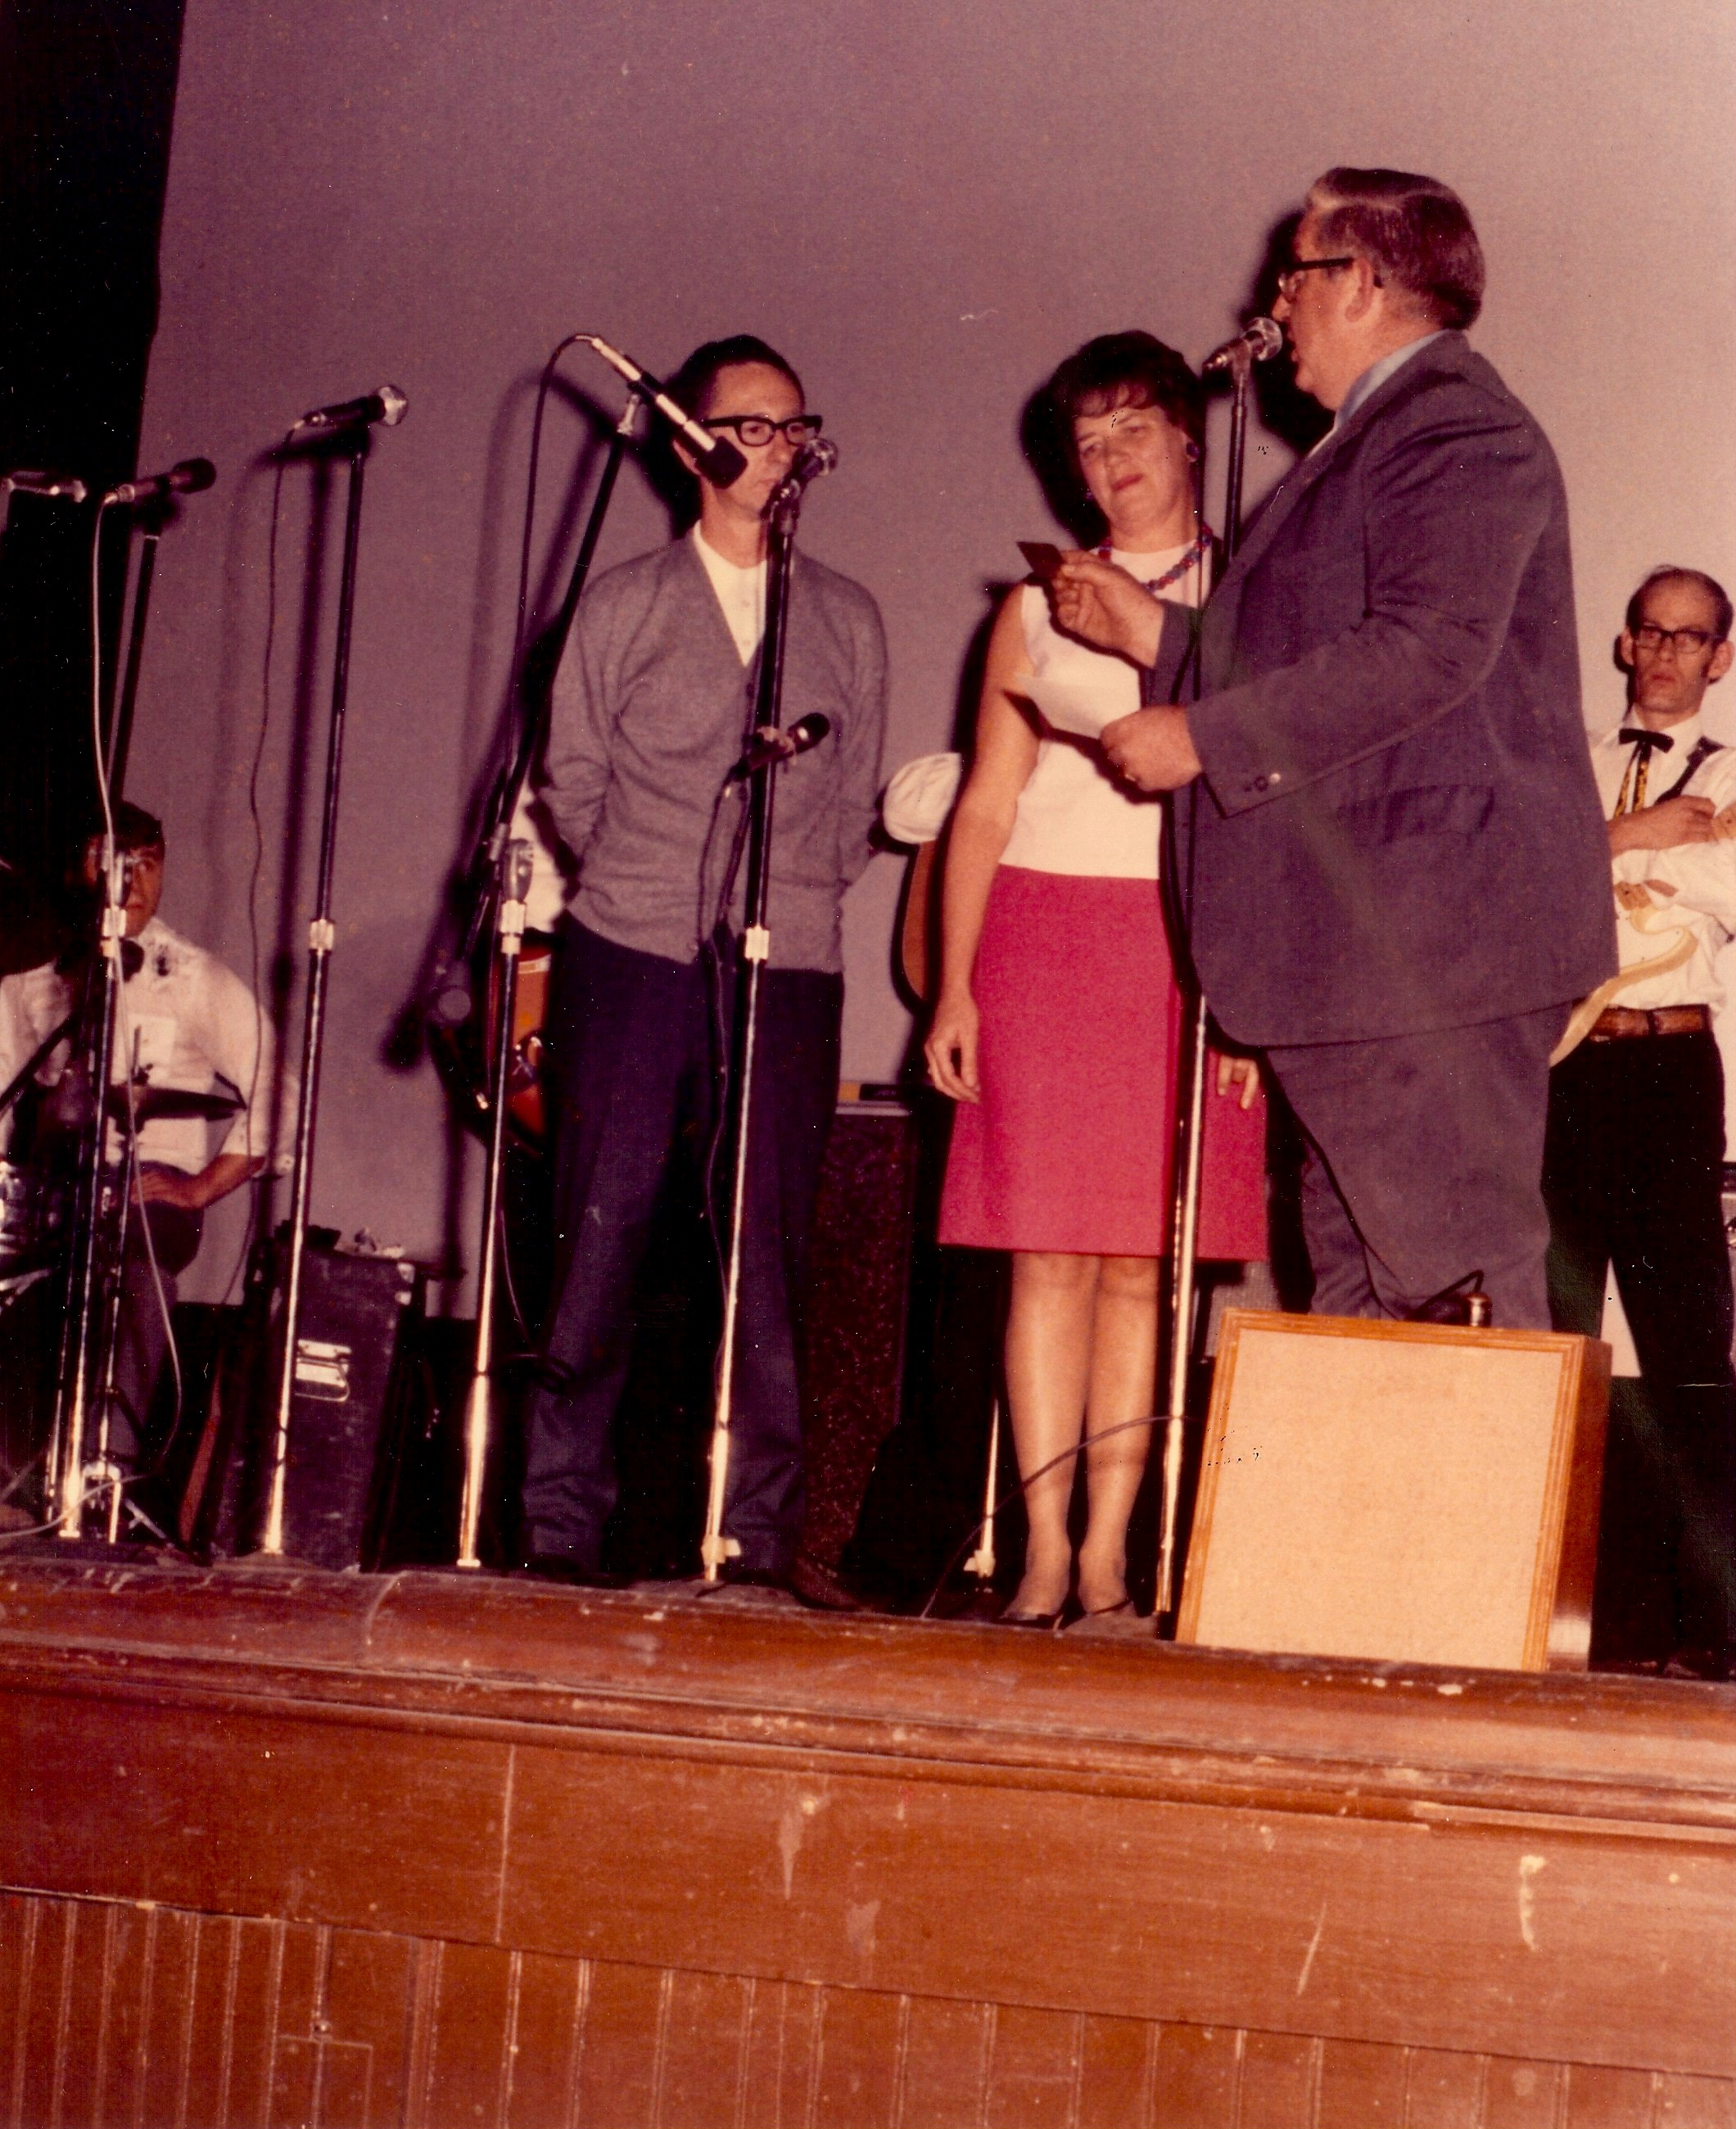 Onstage at the Keystone Theatre, the Buffington's receive an appreciation award from a representative of the Penn York Country Music Club, circa 1970